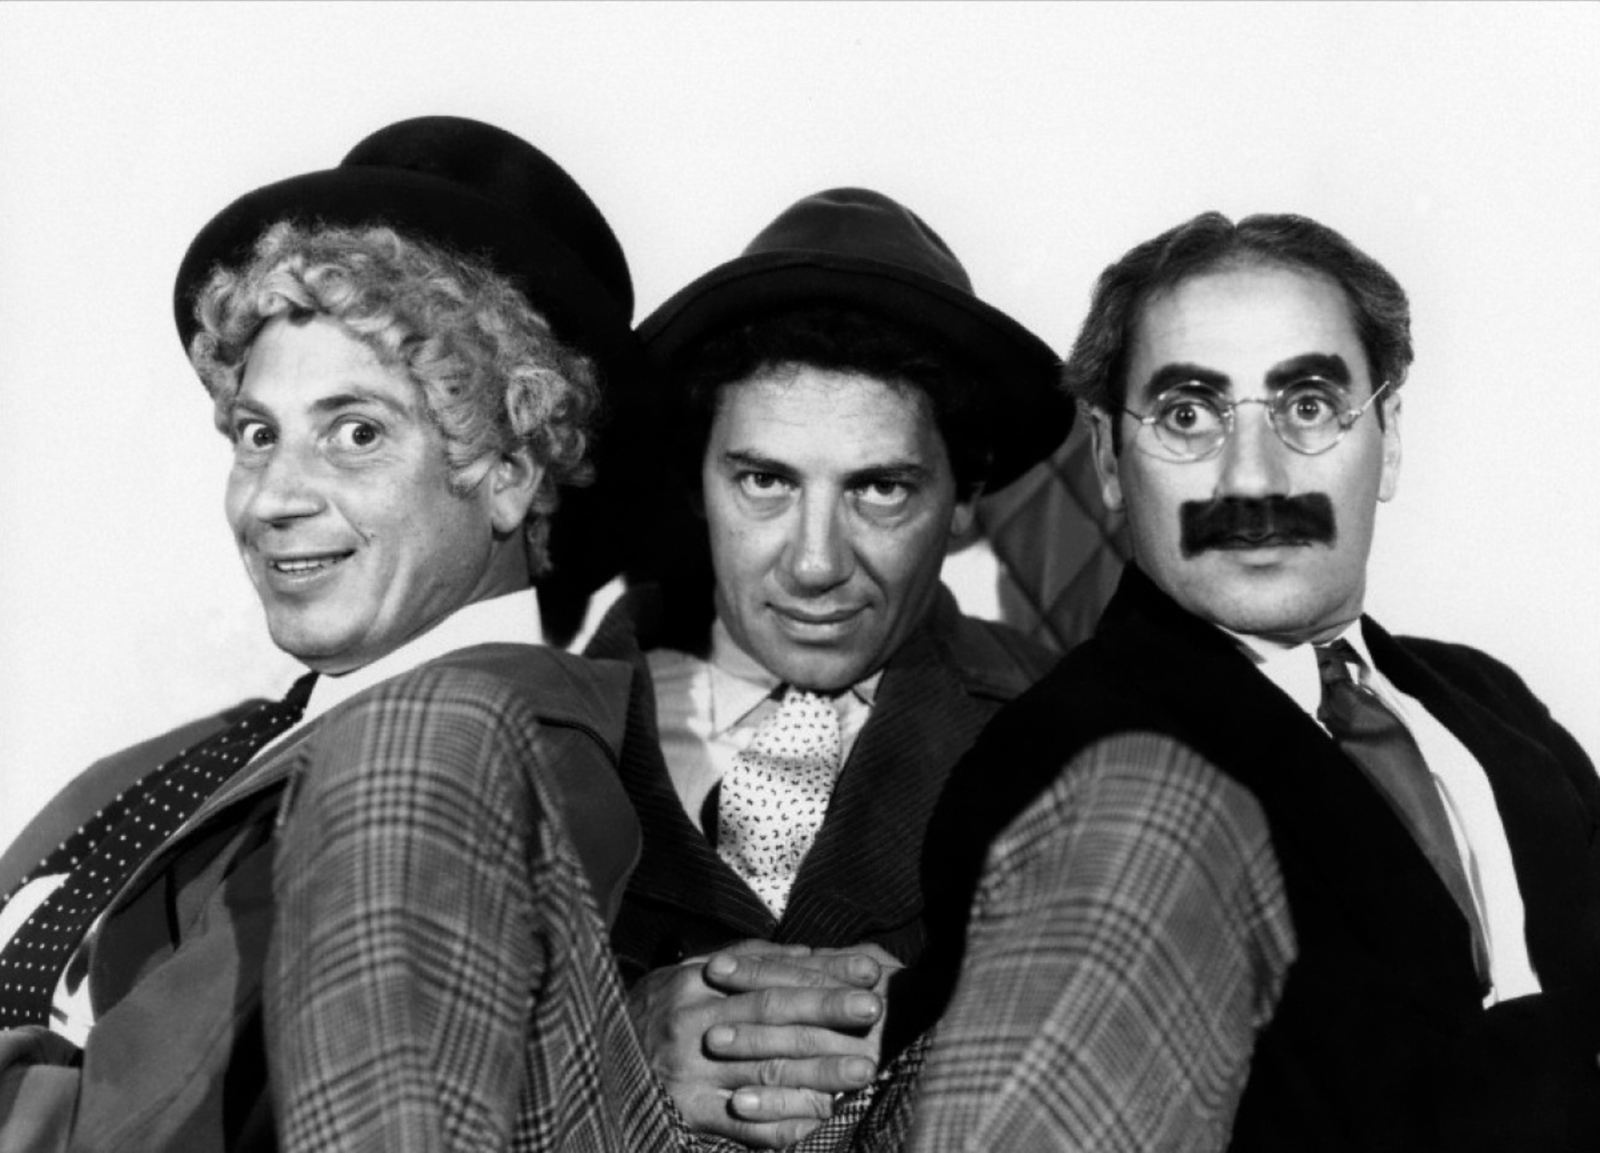 1600x1153 - Marx Brothers Wallpapers 22